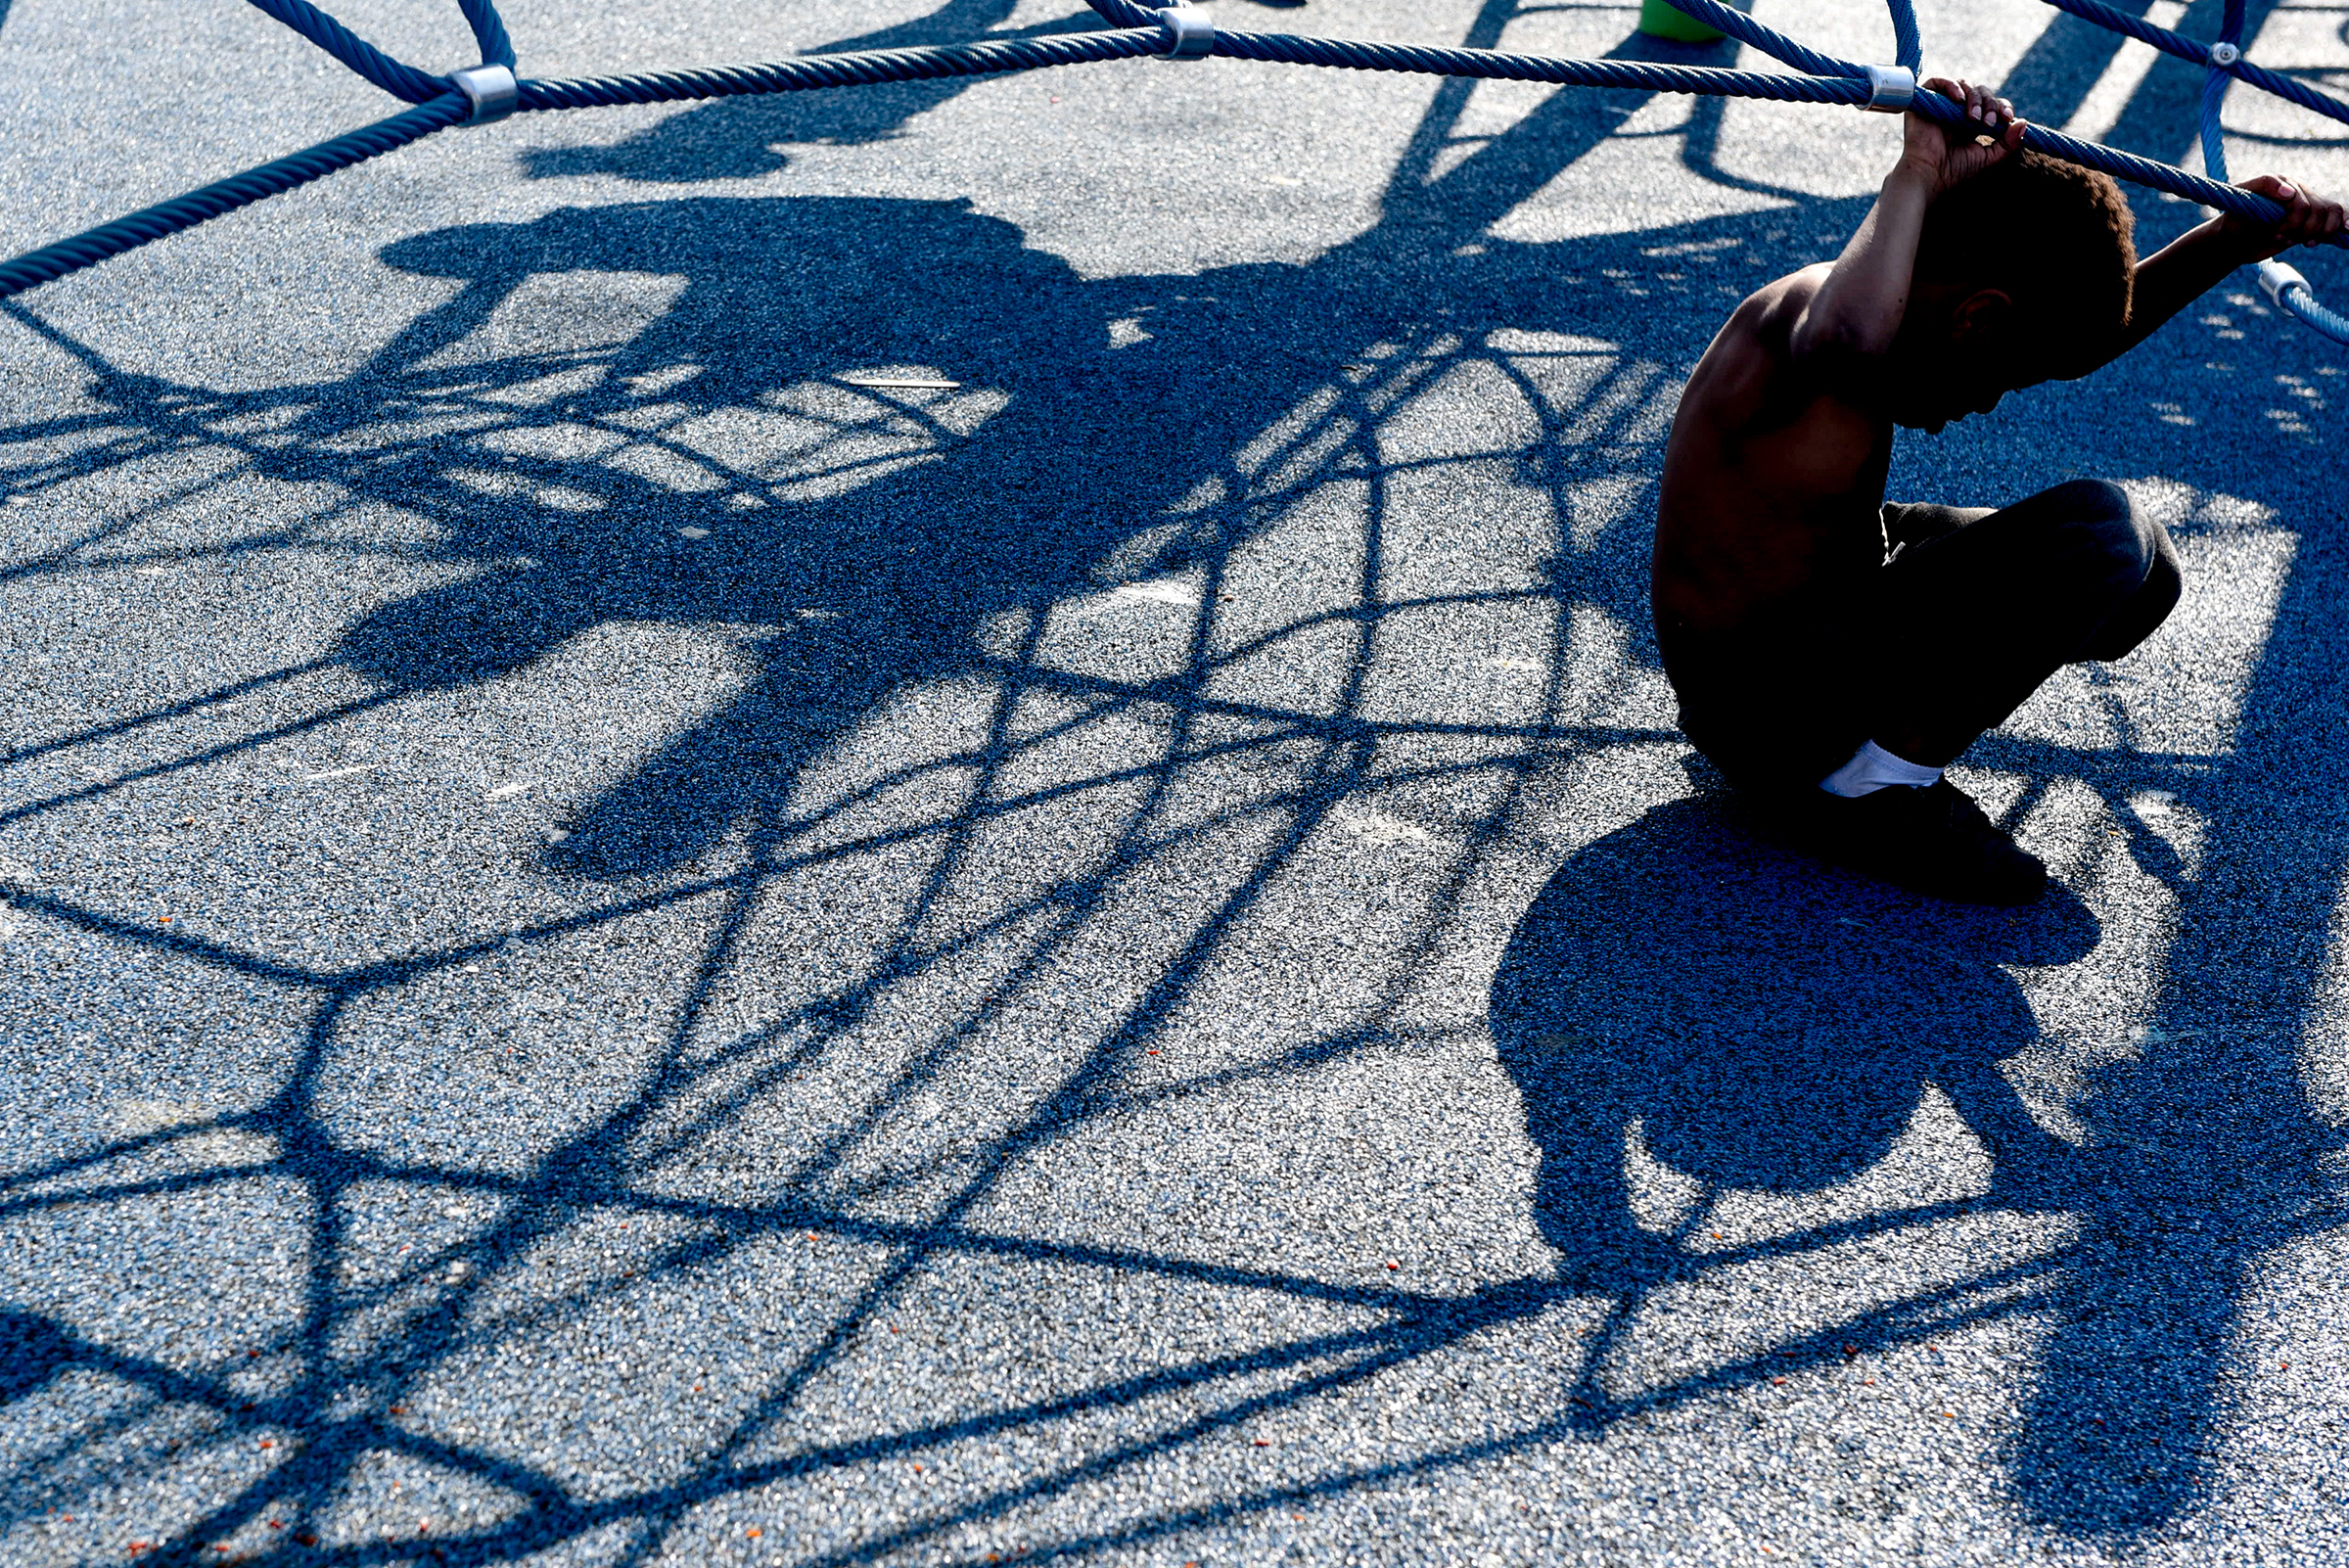 A young boy rests in the shade on a hot day at the Fairhill Square Playground ribbon cutting in North Philadelphia on April 13, 2018. Brianna Spause / Philadelphia Parks & Recreation